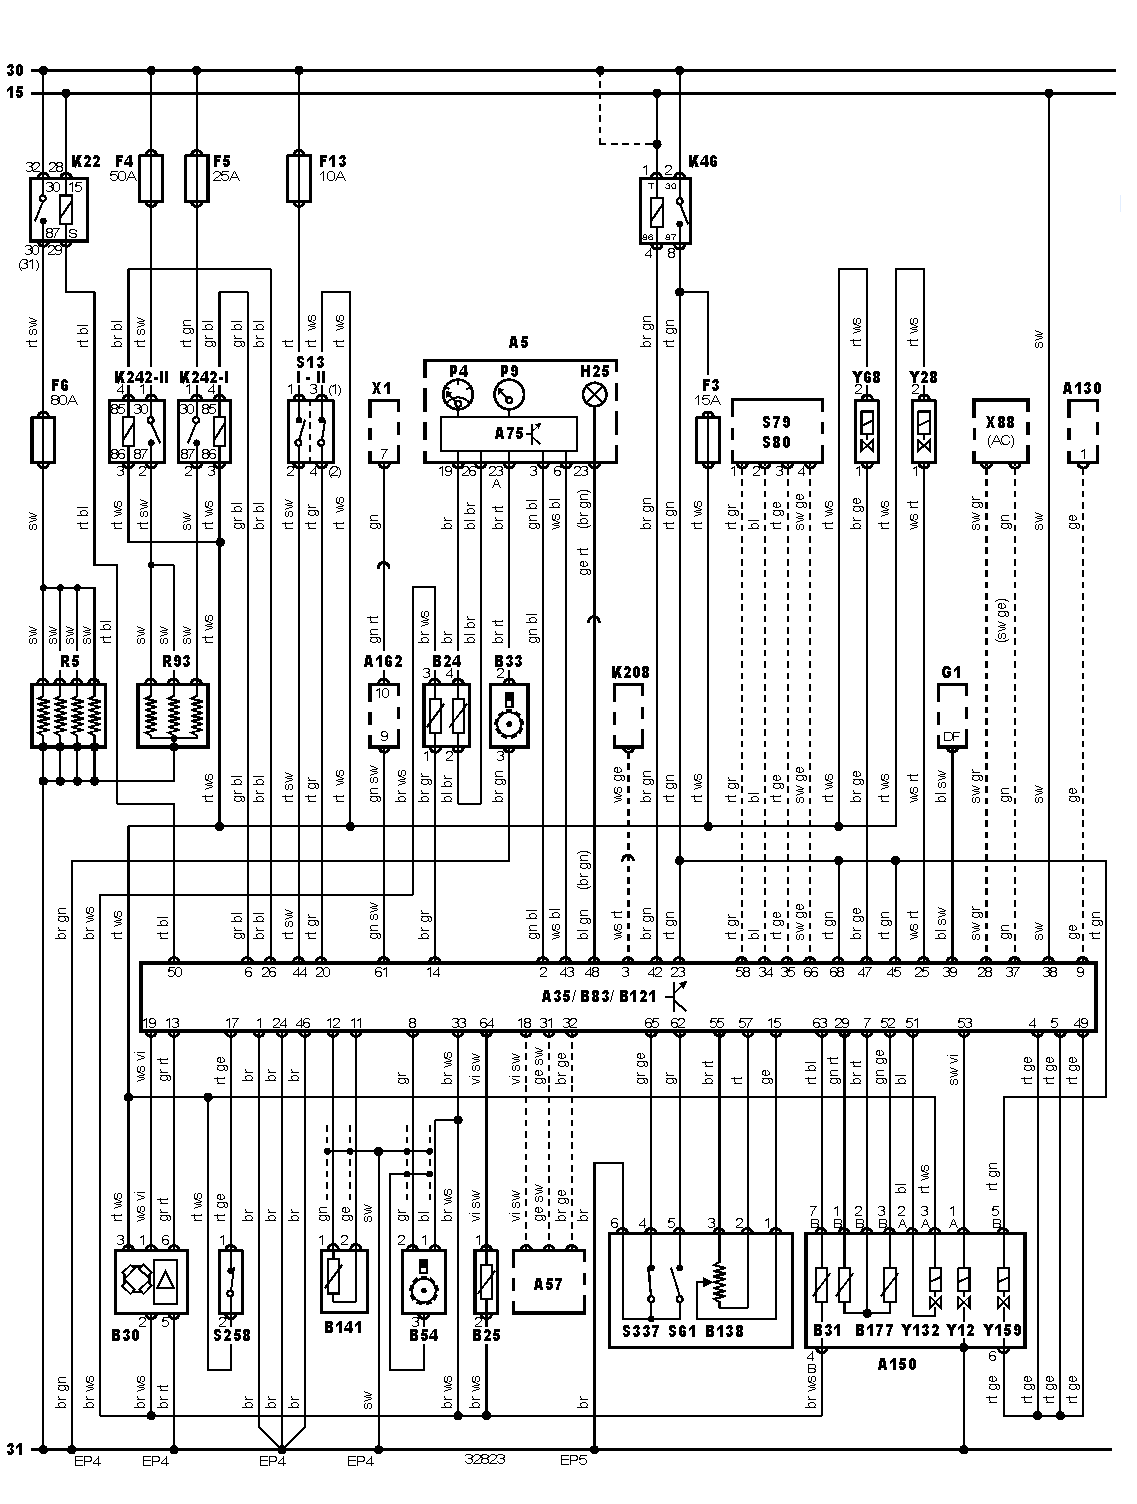 Vw Passat Wiring Diagram 1 8t